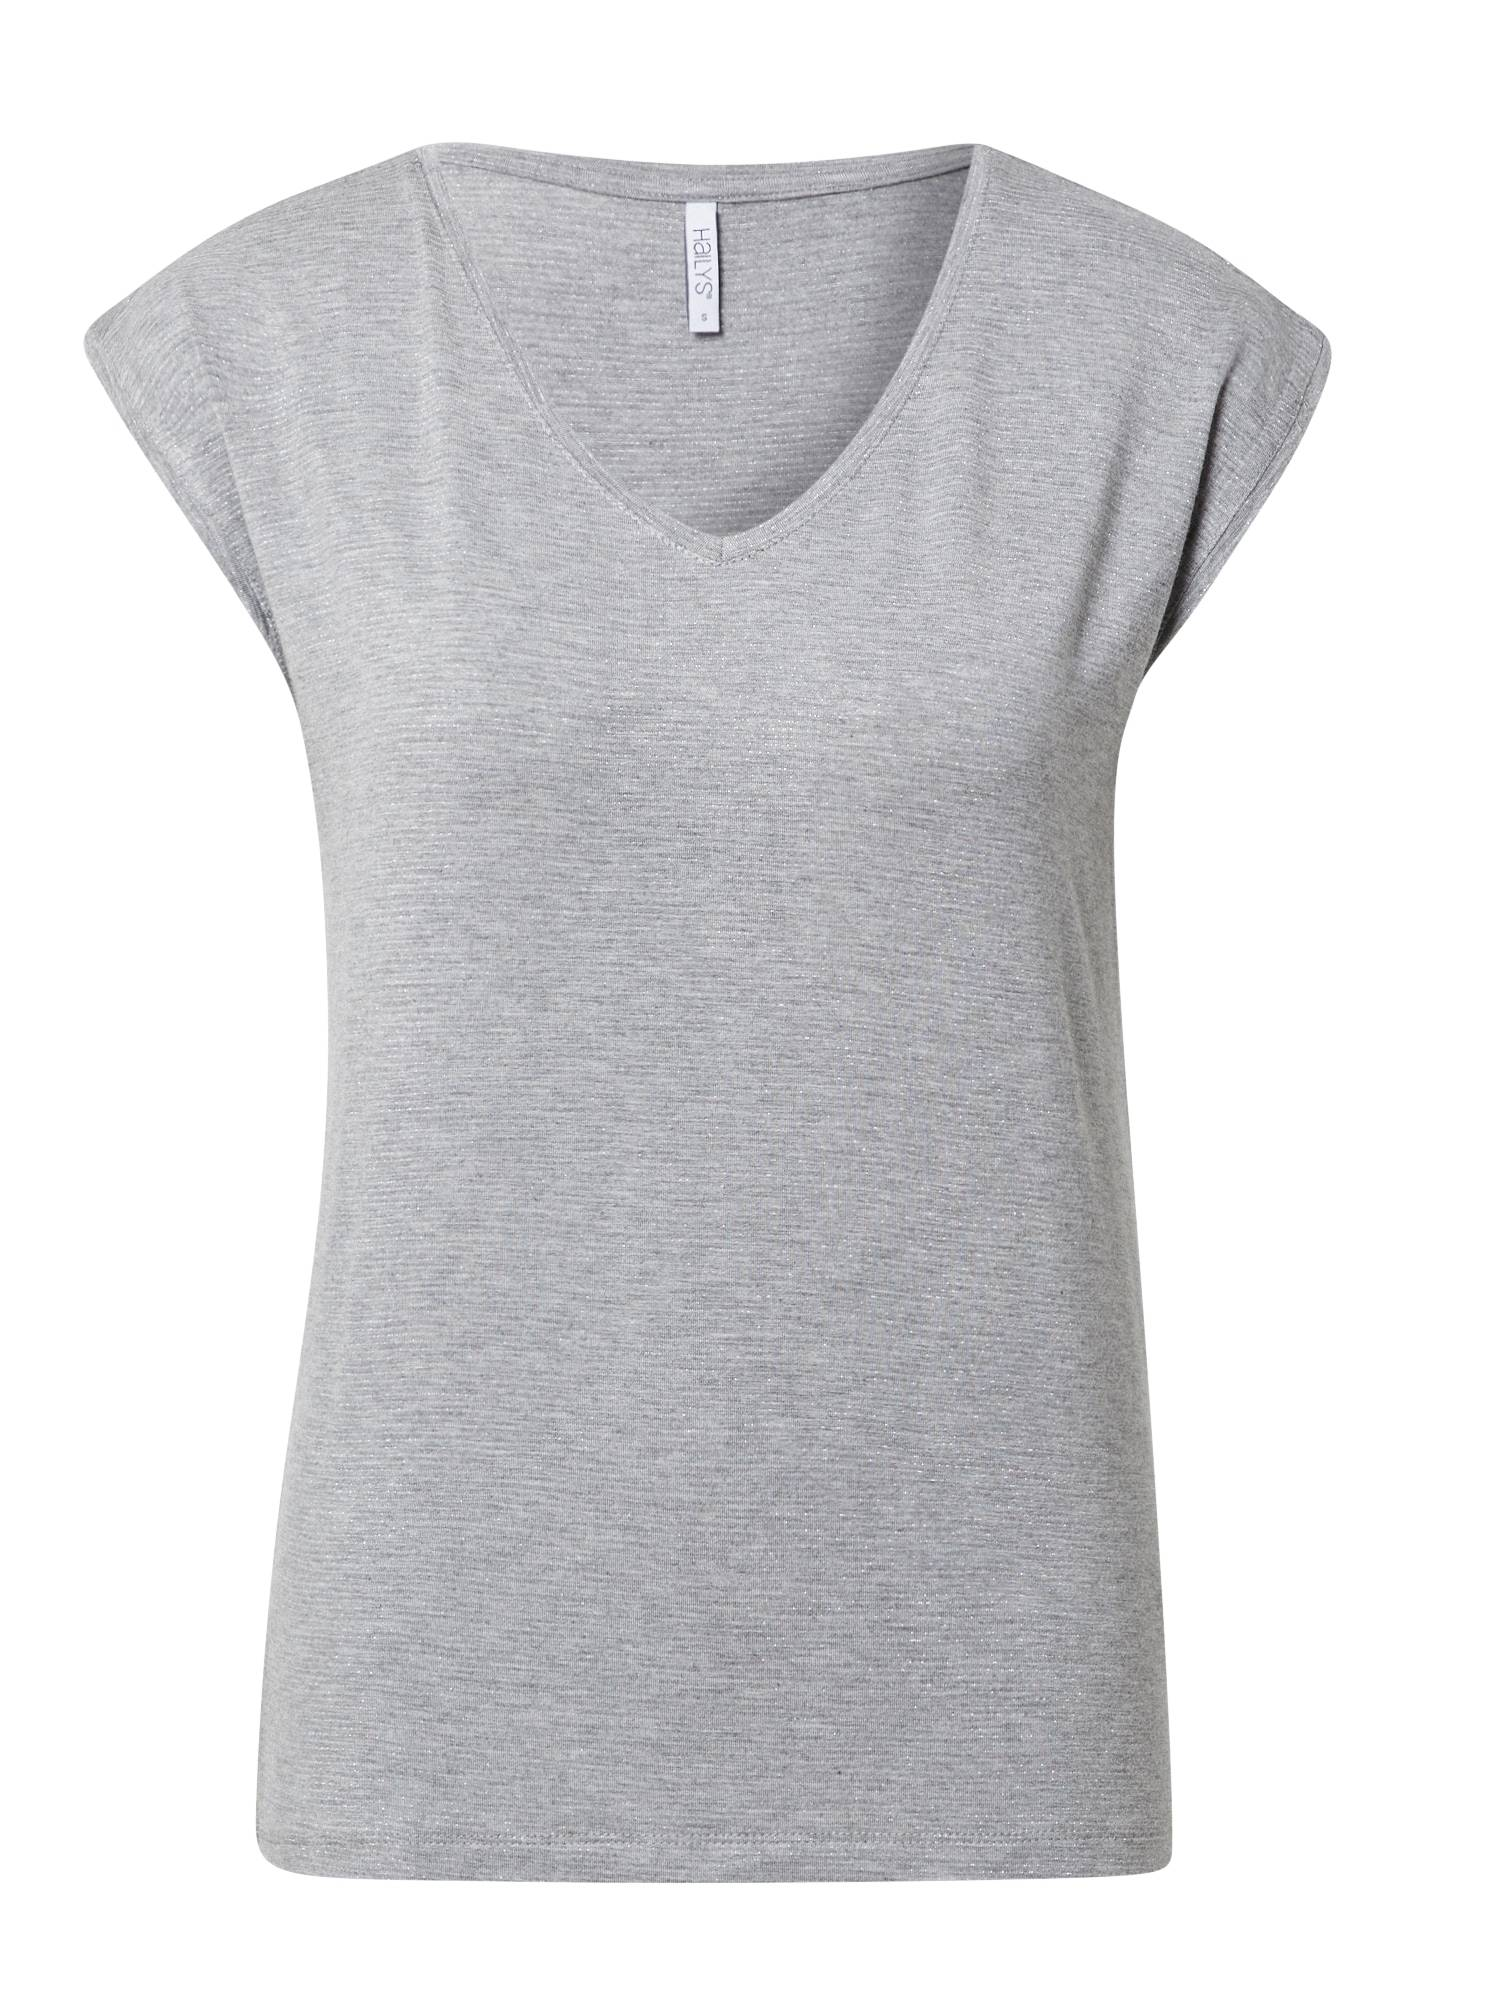 Hailys T-shirt 'TP Luxe'  - Gris - Taille: XL - female